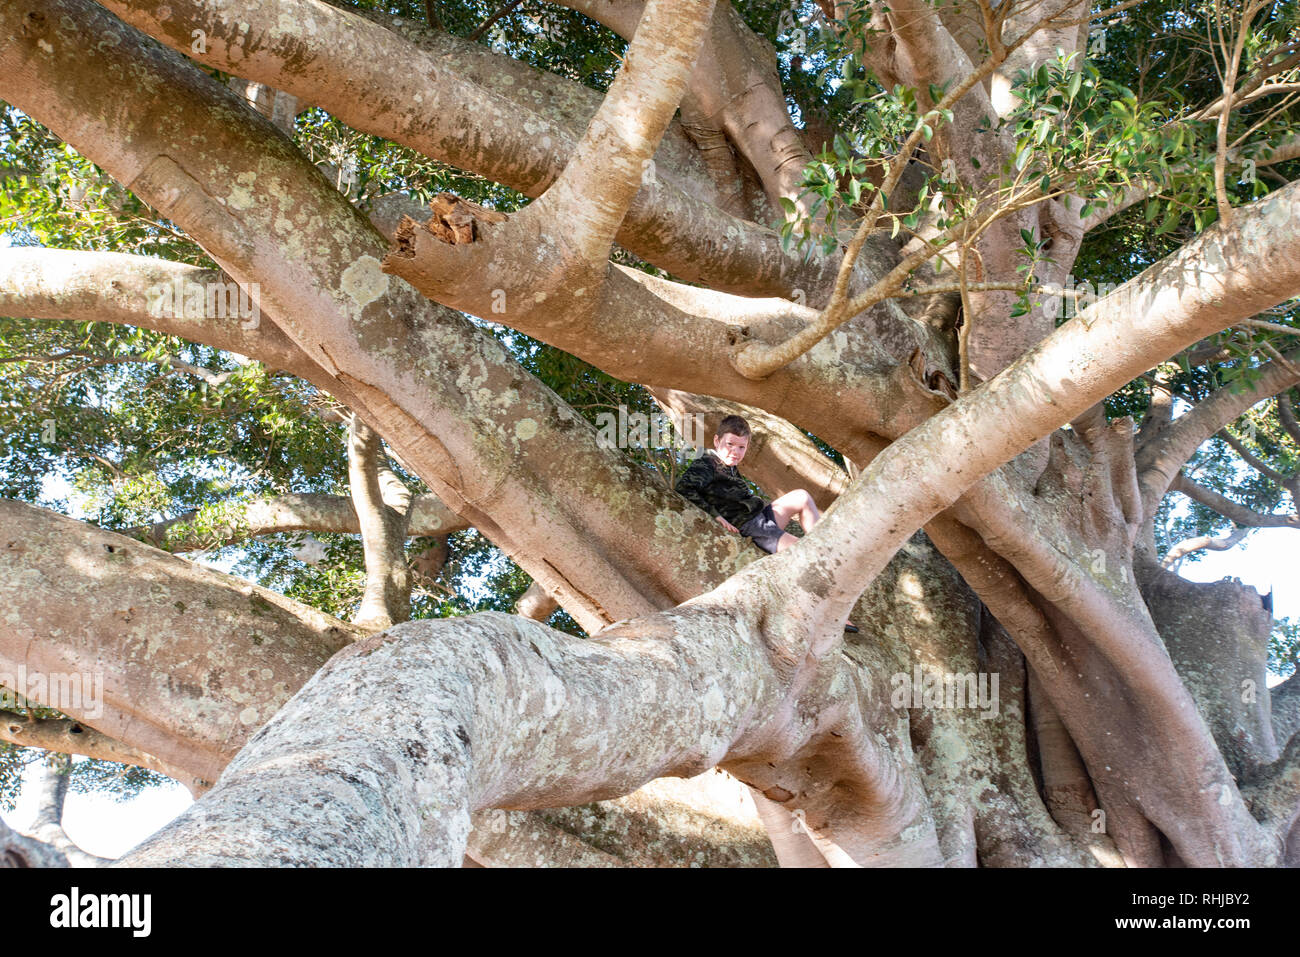 Young boy in large fig tree, Wollongbar, New South Wales, Australia Stock Photo